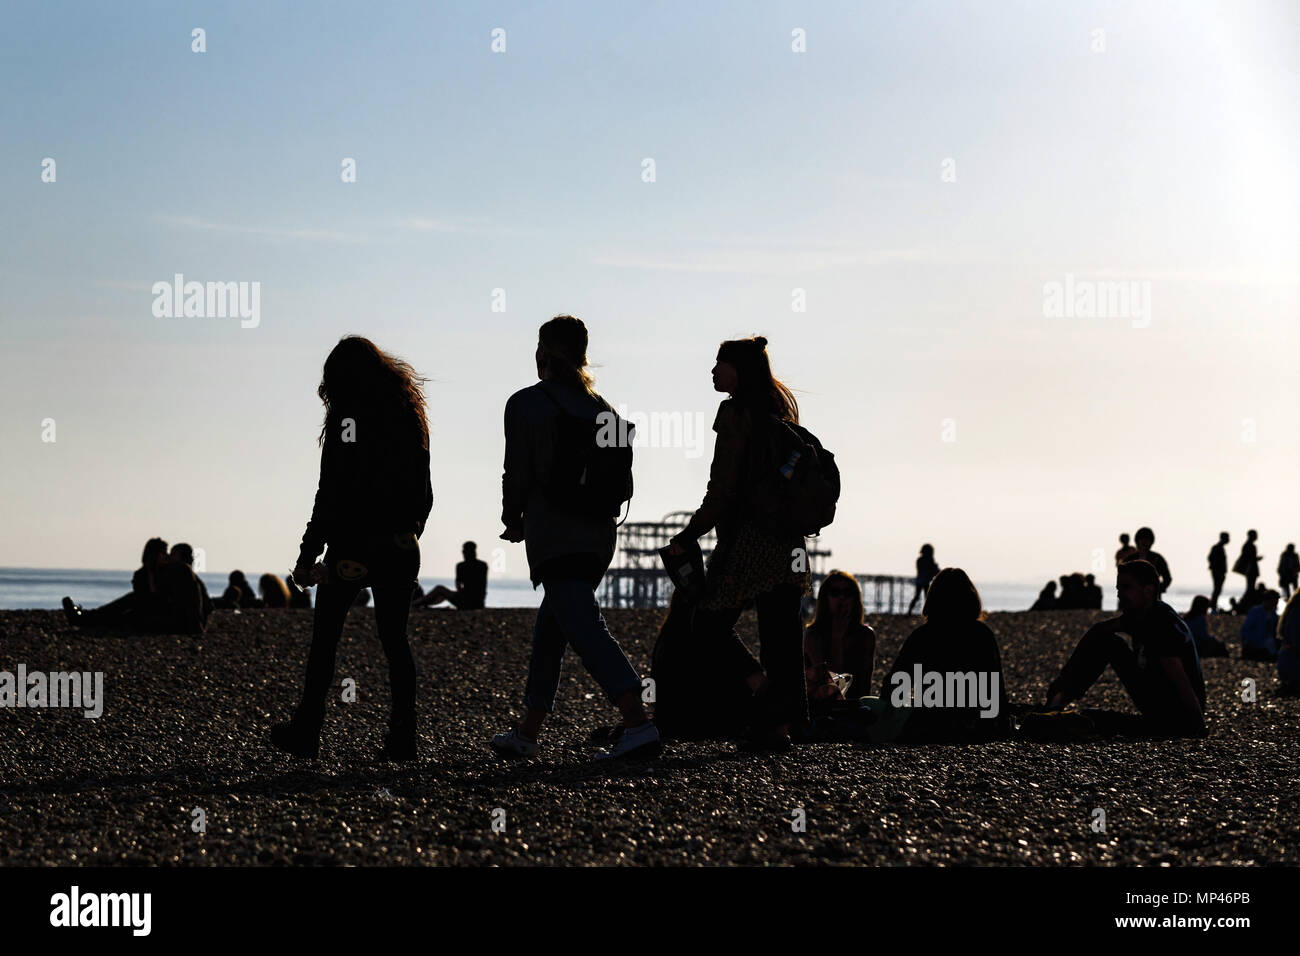 silhouette-figures-on-brighton-seafront-